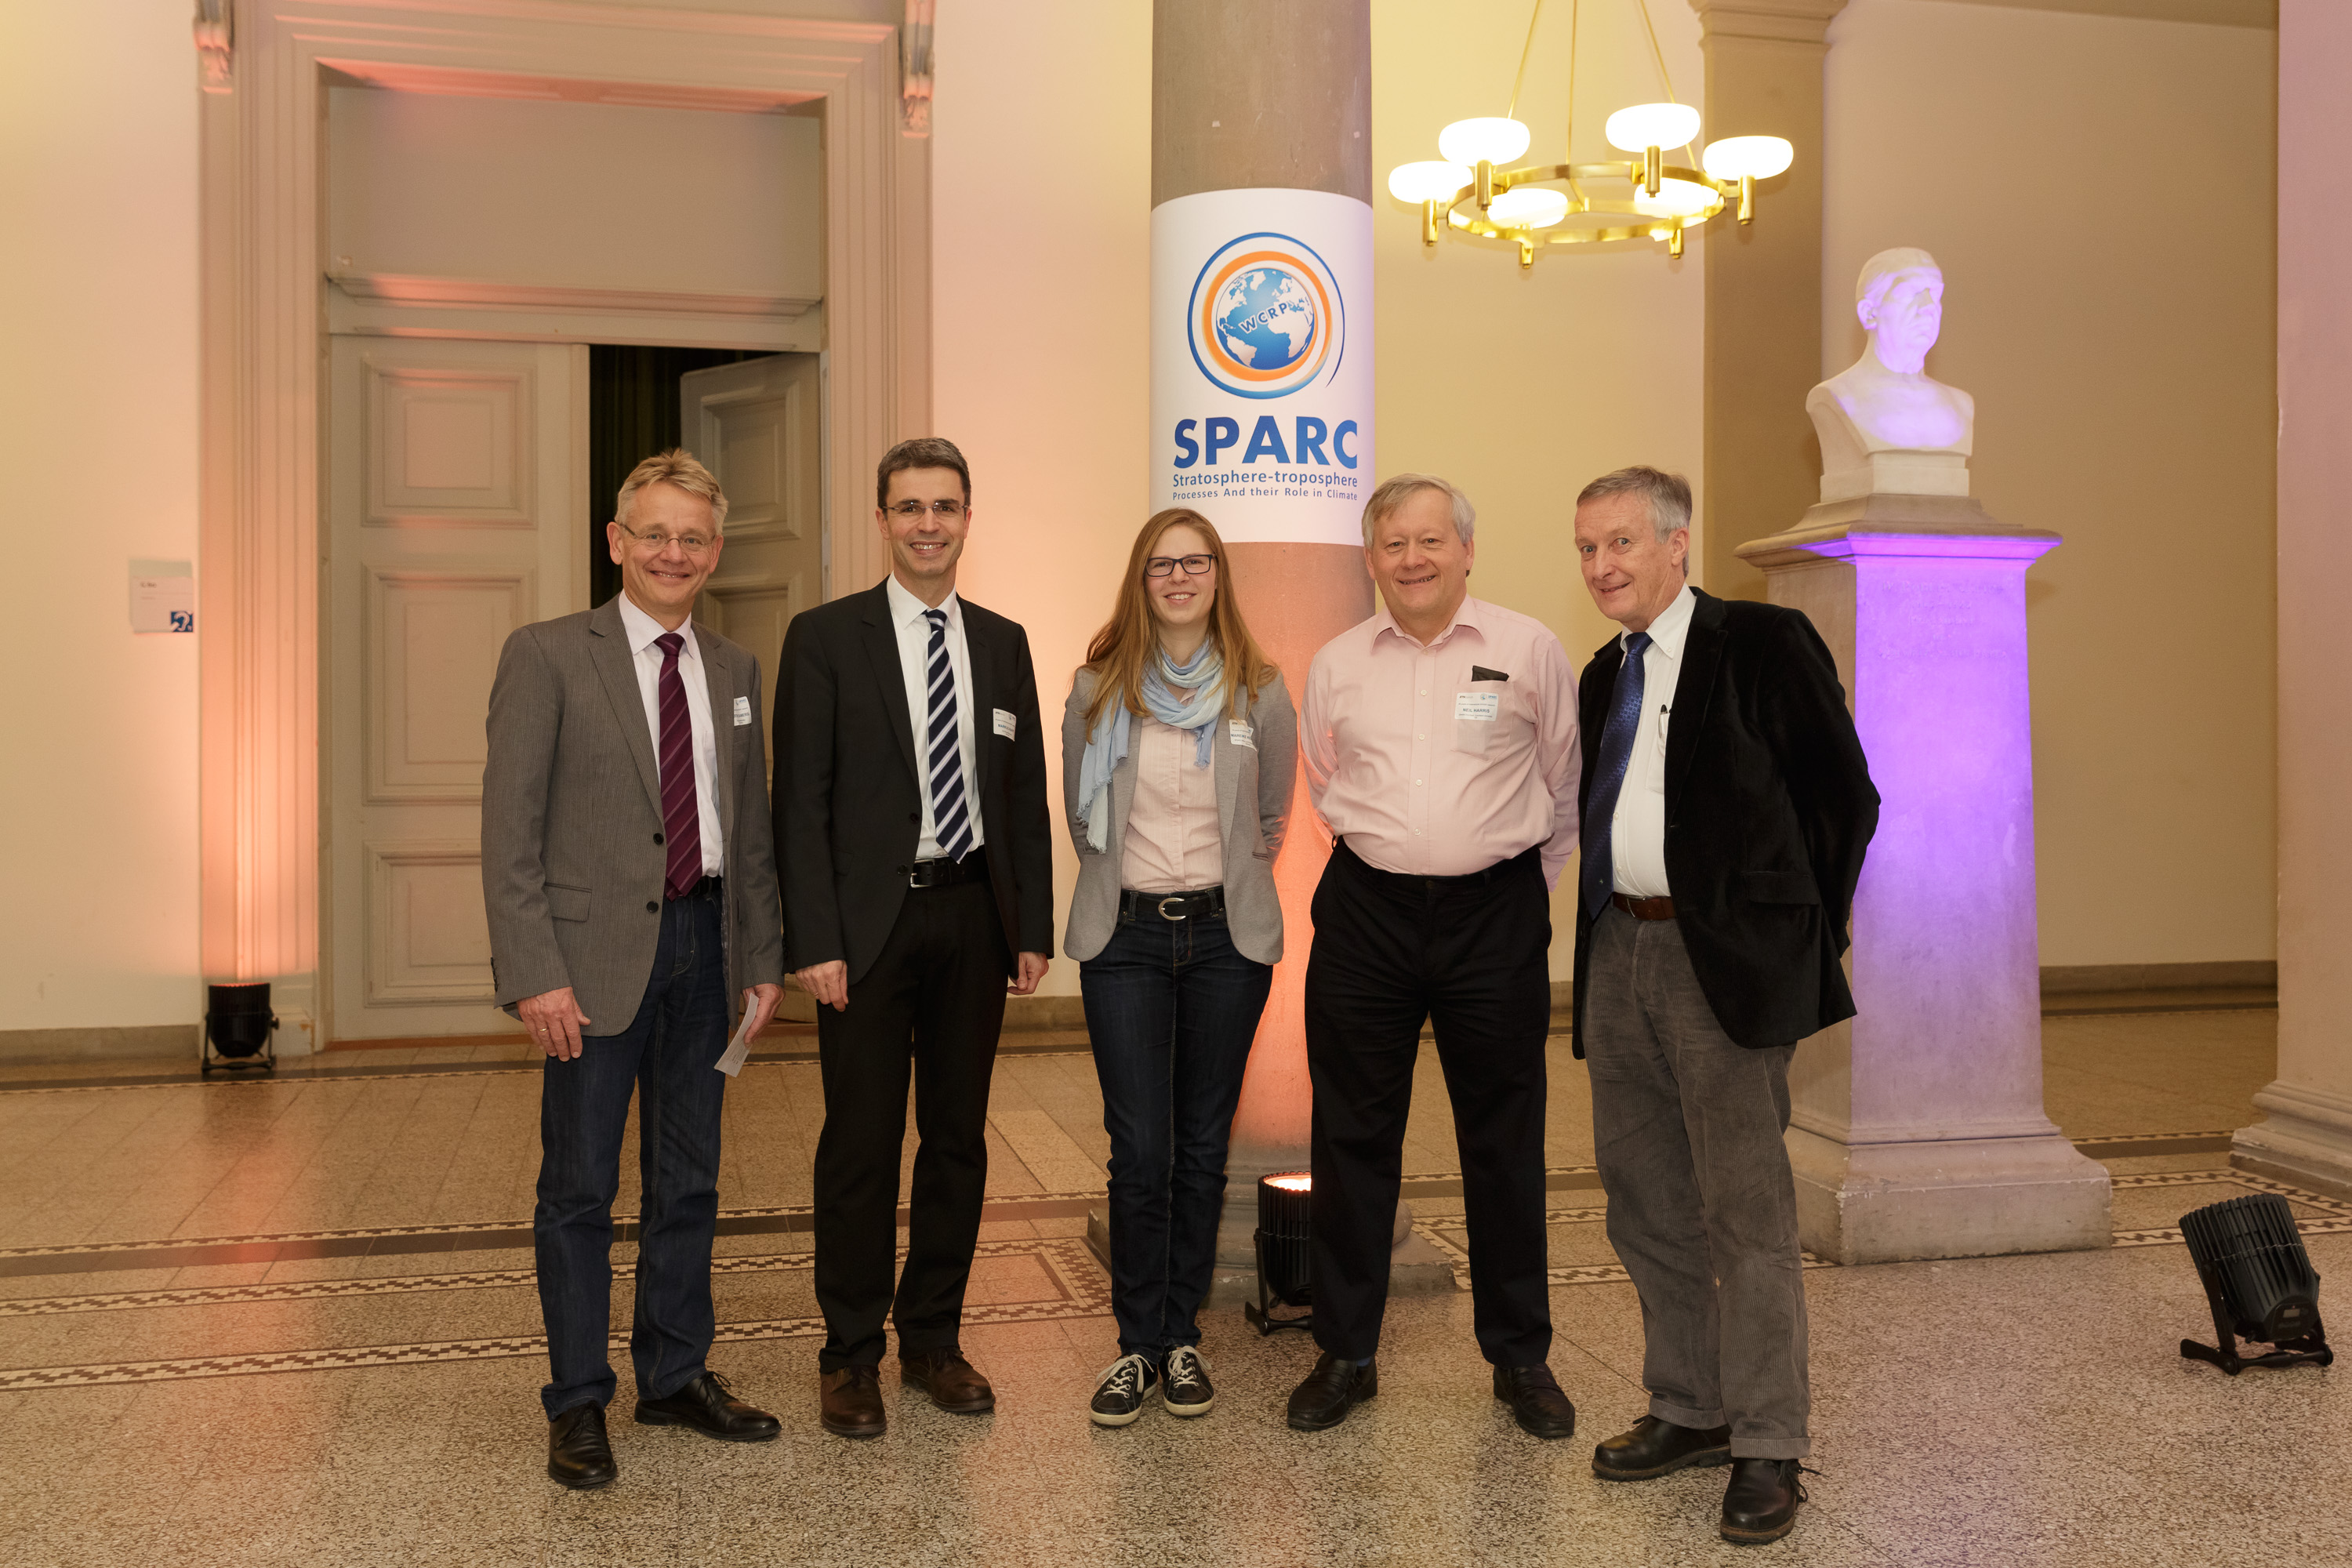 Future SPARC Office staff at Oberpfaffenhofen, DLR institute members Prof. Dr. Markus Rapp and Prof. Dr. Martin Dameris and SPARC Co-chair Prof. Dr. Neil Harris from Cranfield University, UK.